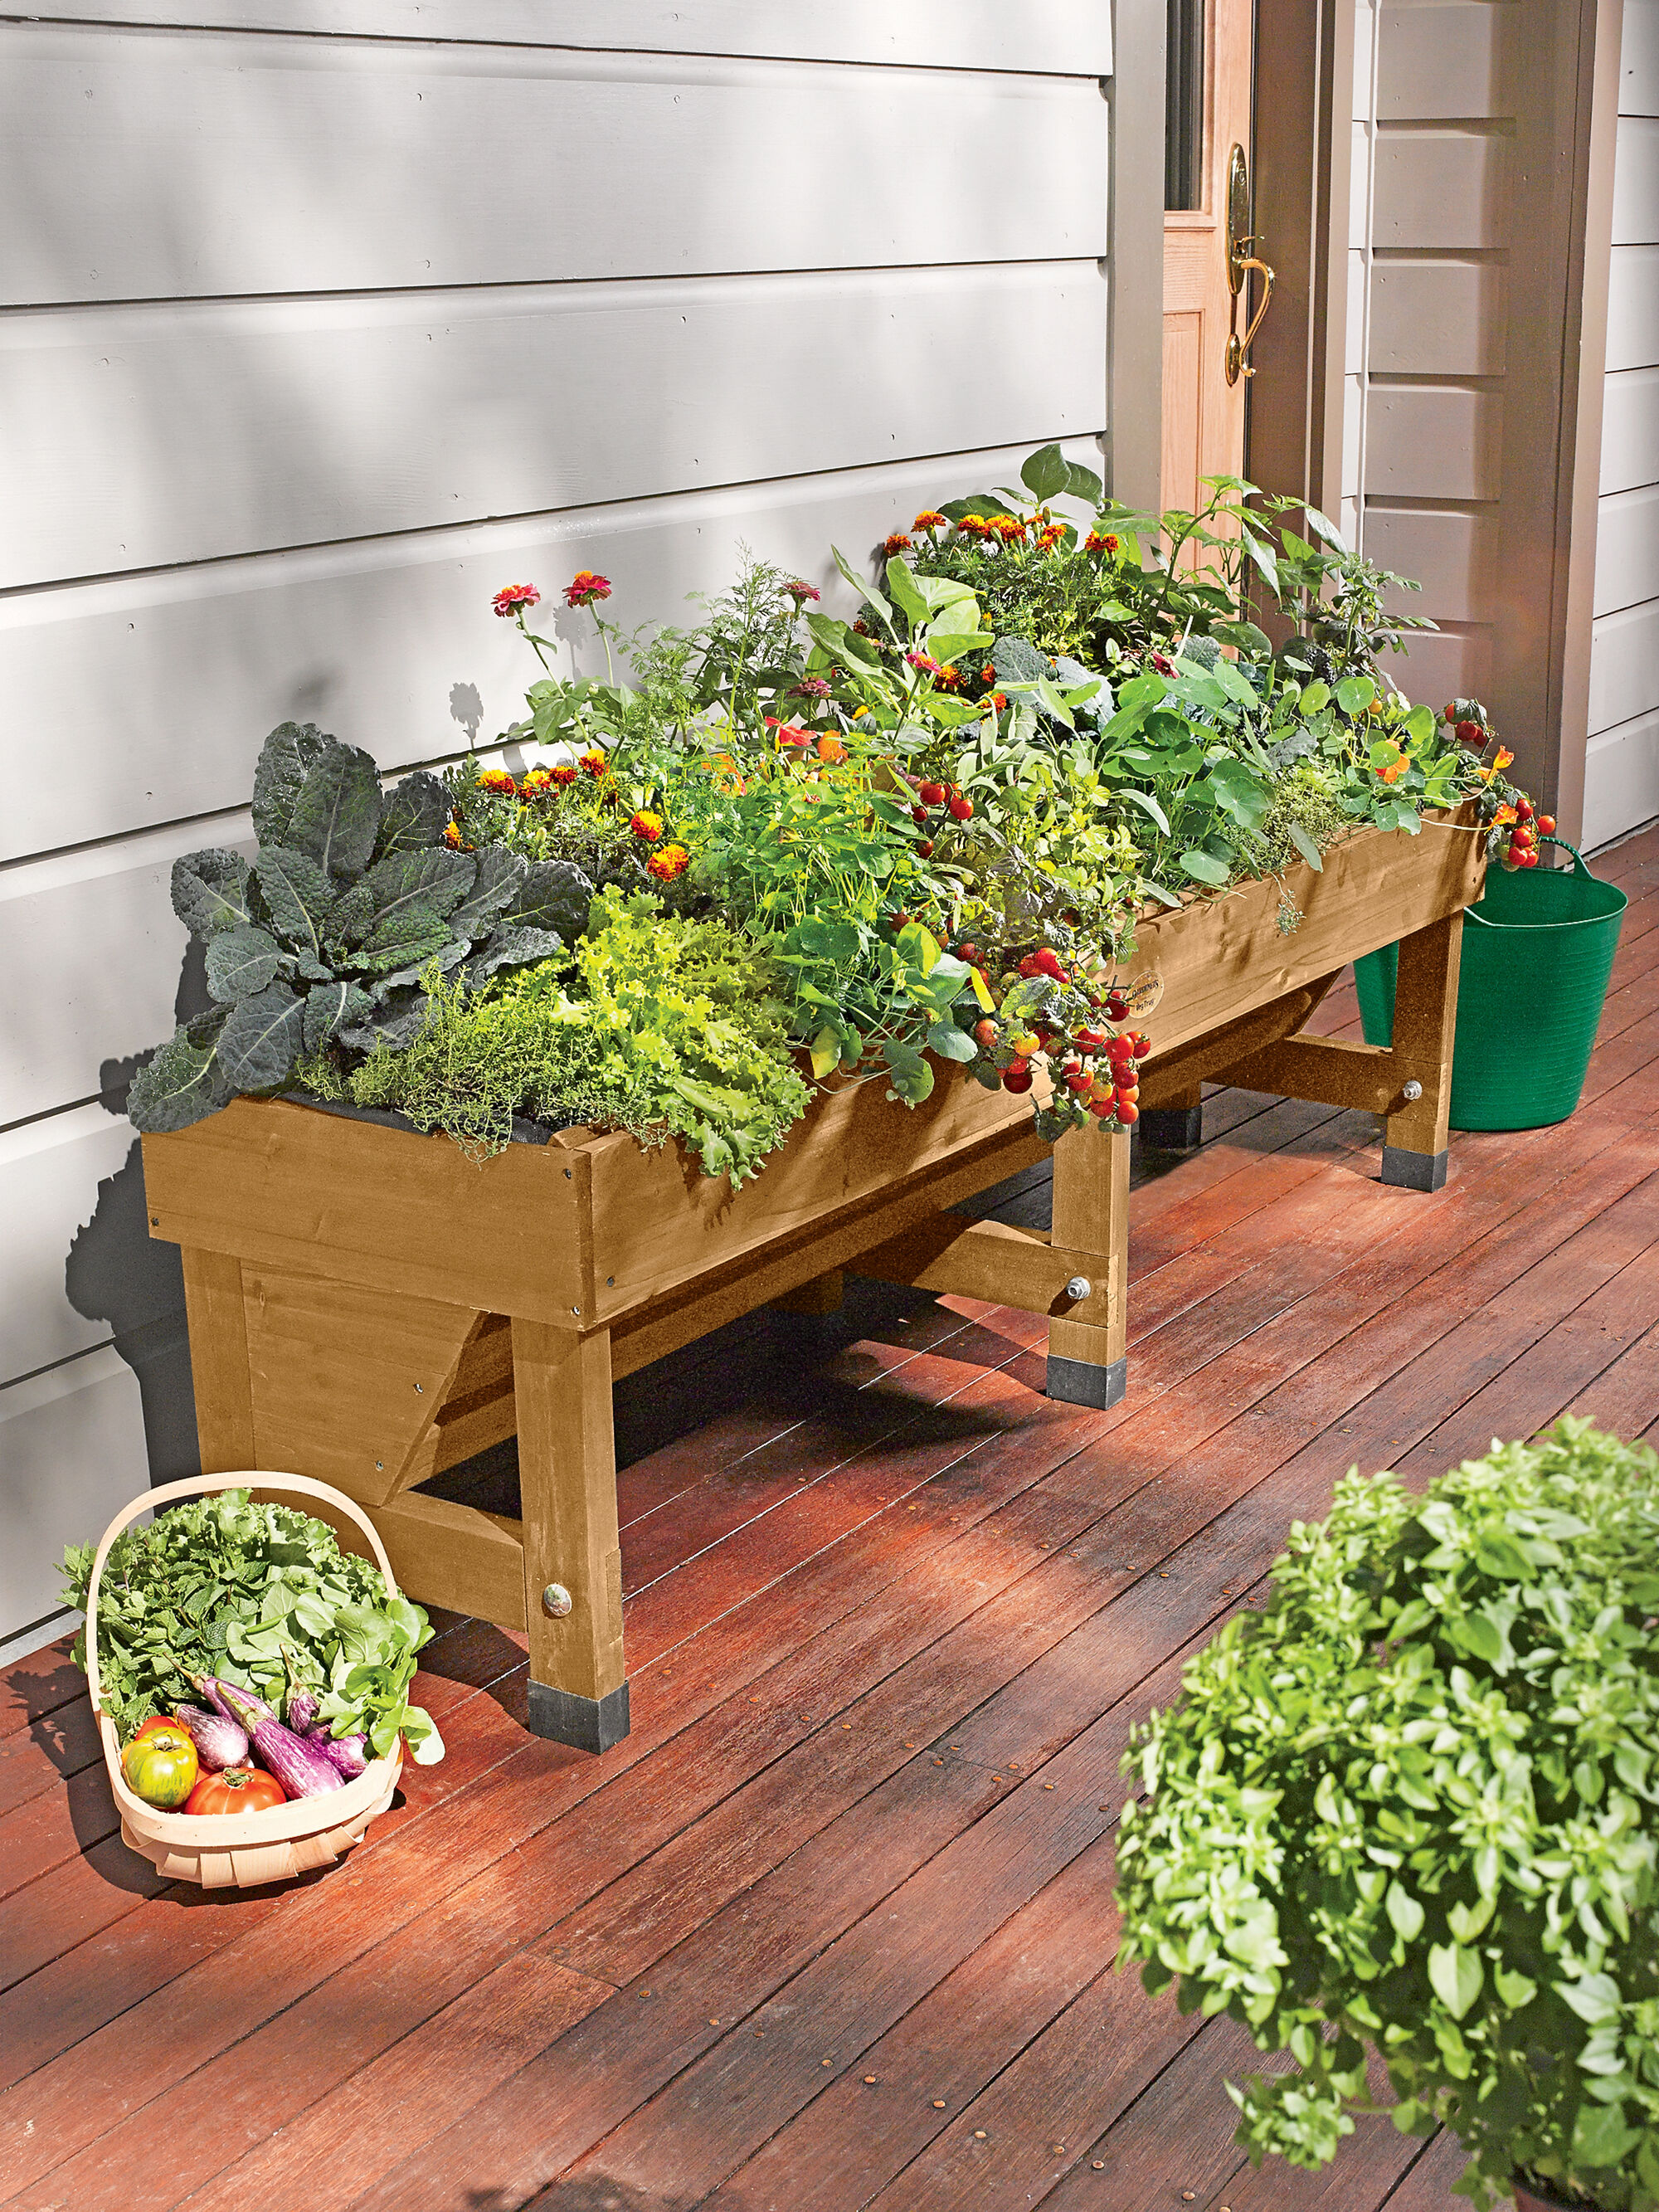 How To Transform A Raised Bed Into A Grow Box